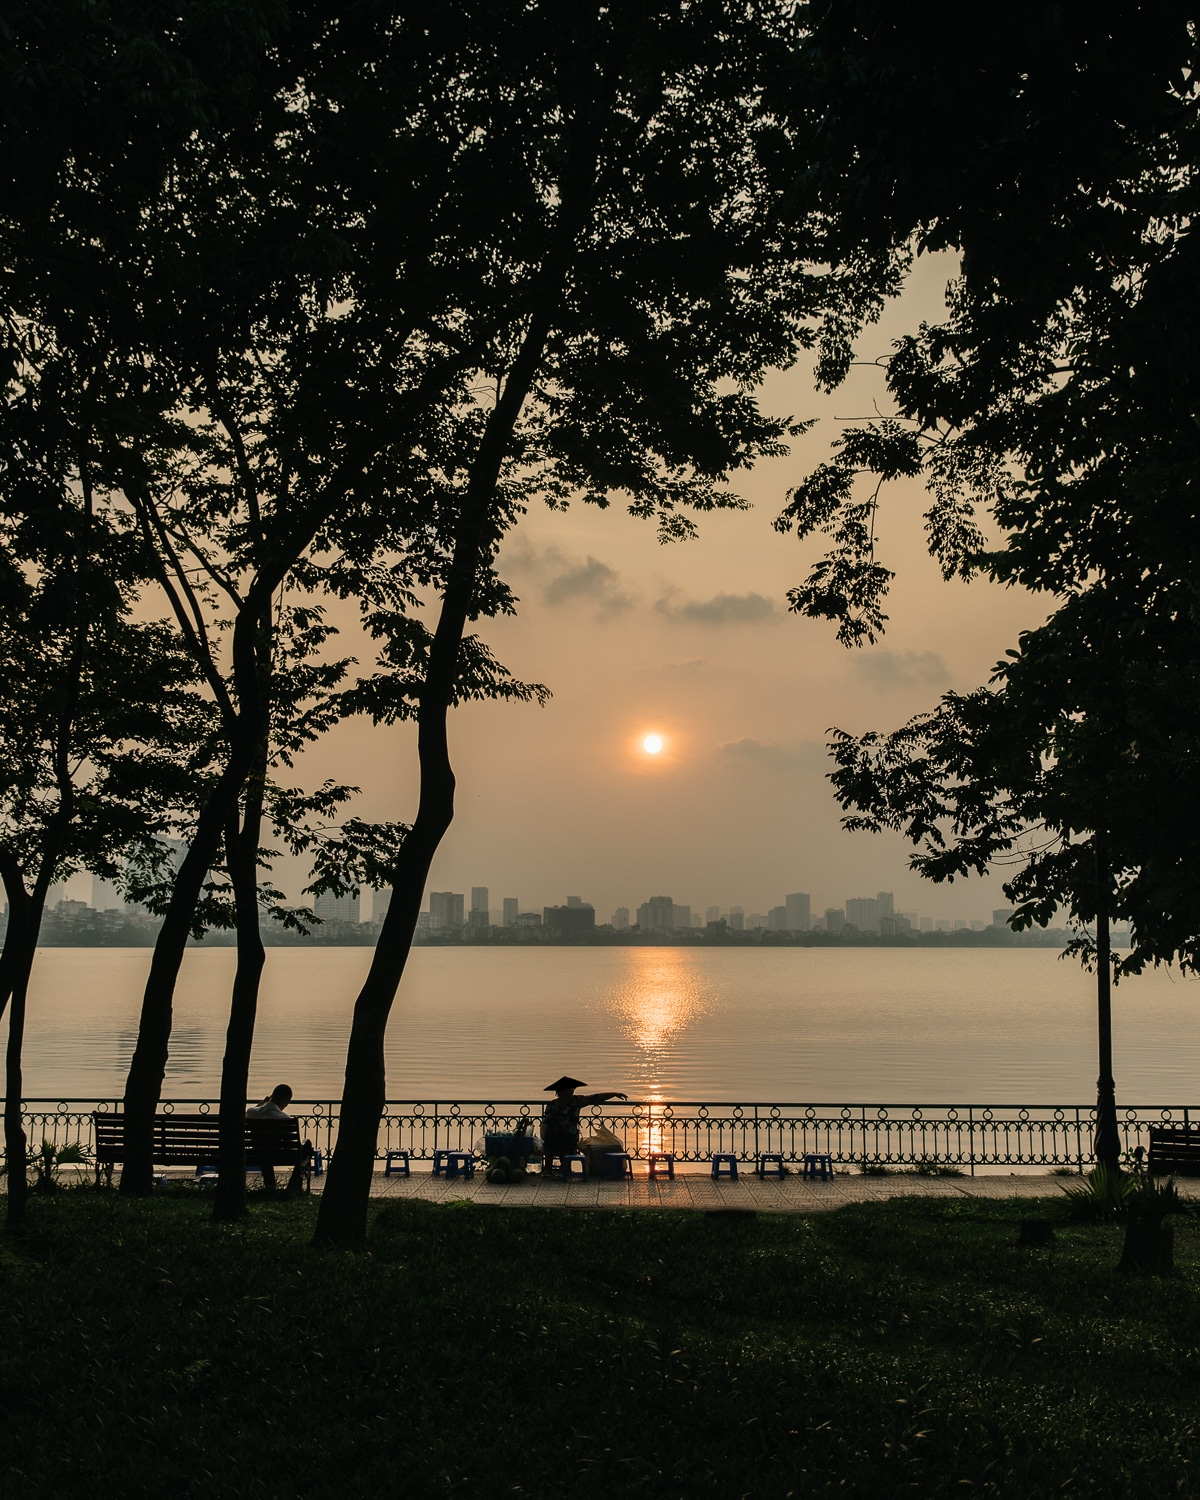 Sunset at the West Lake, Hanoi's largest freshwater lake.